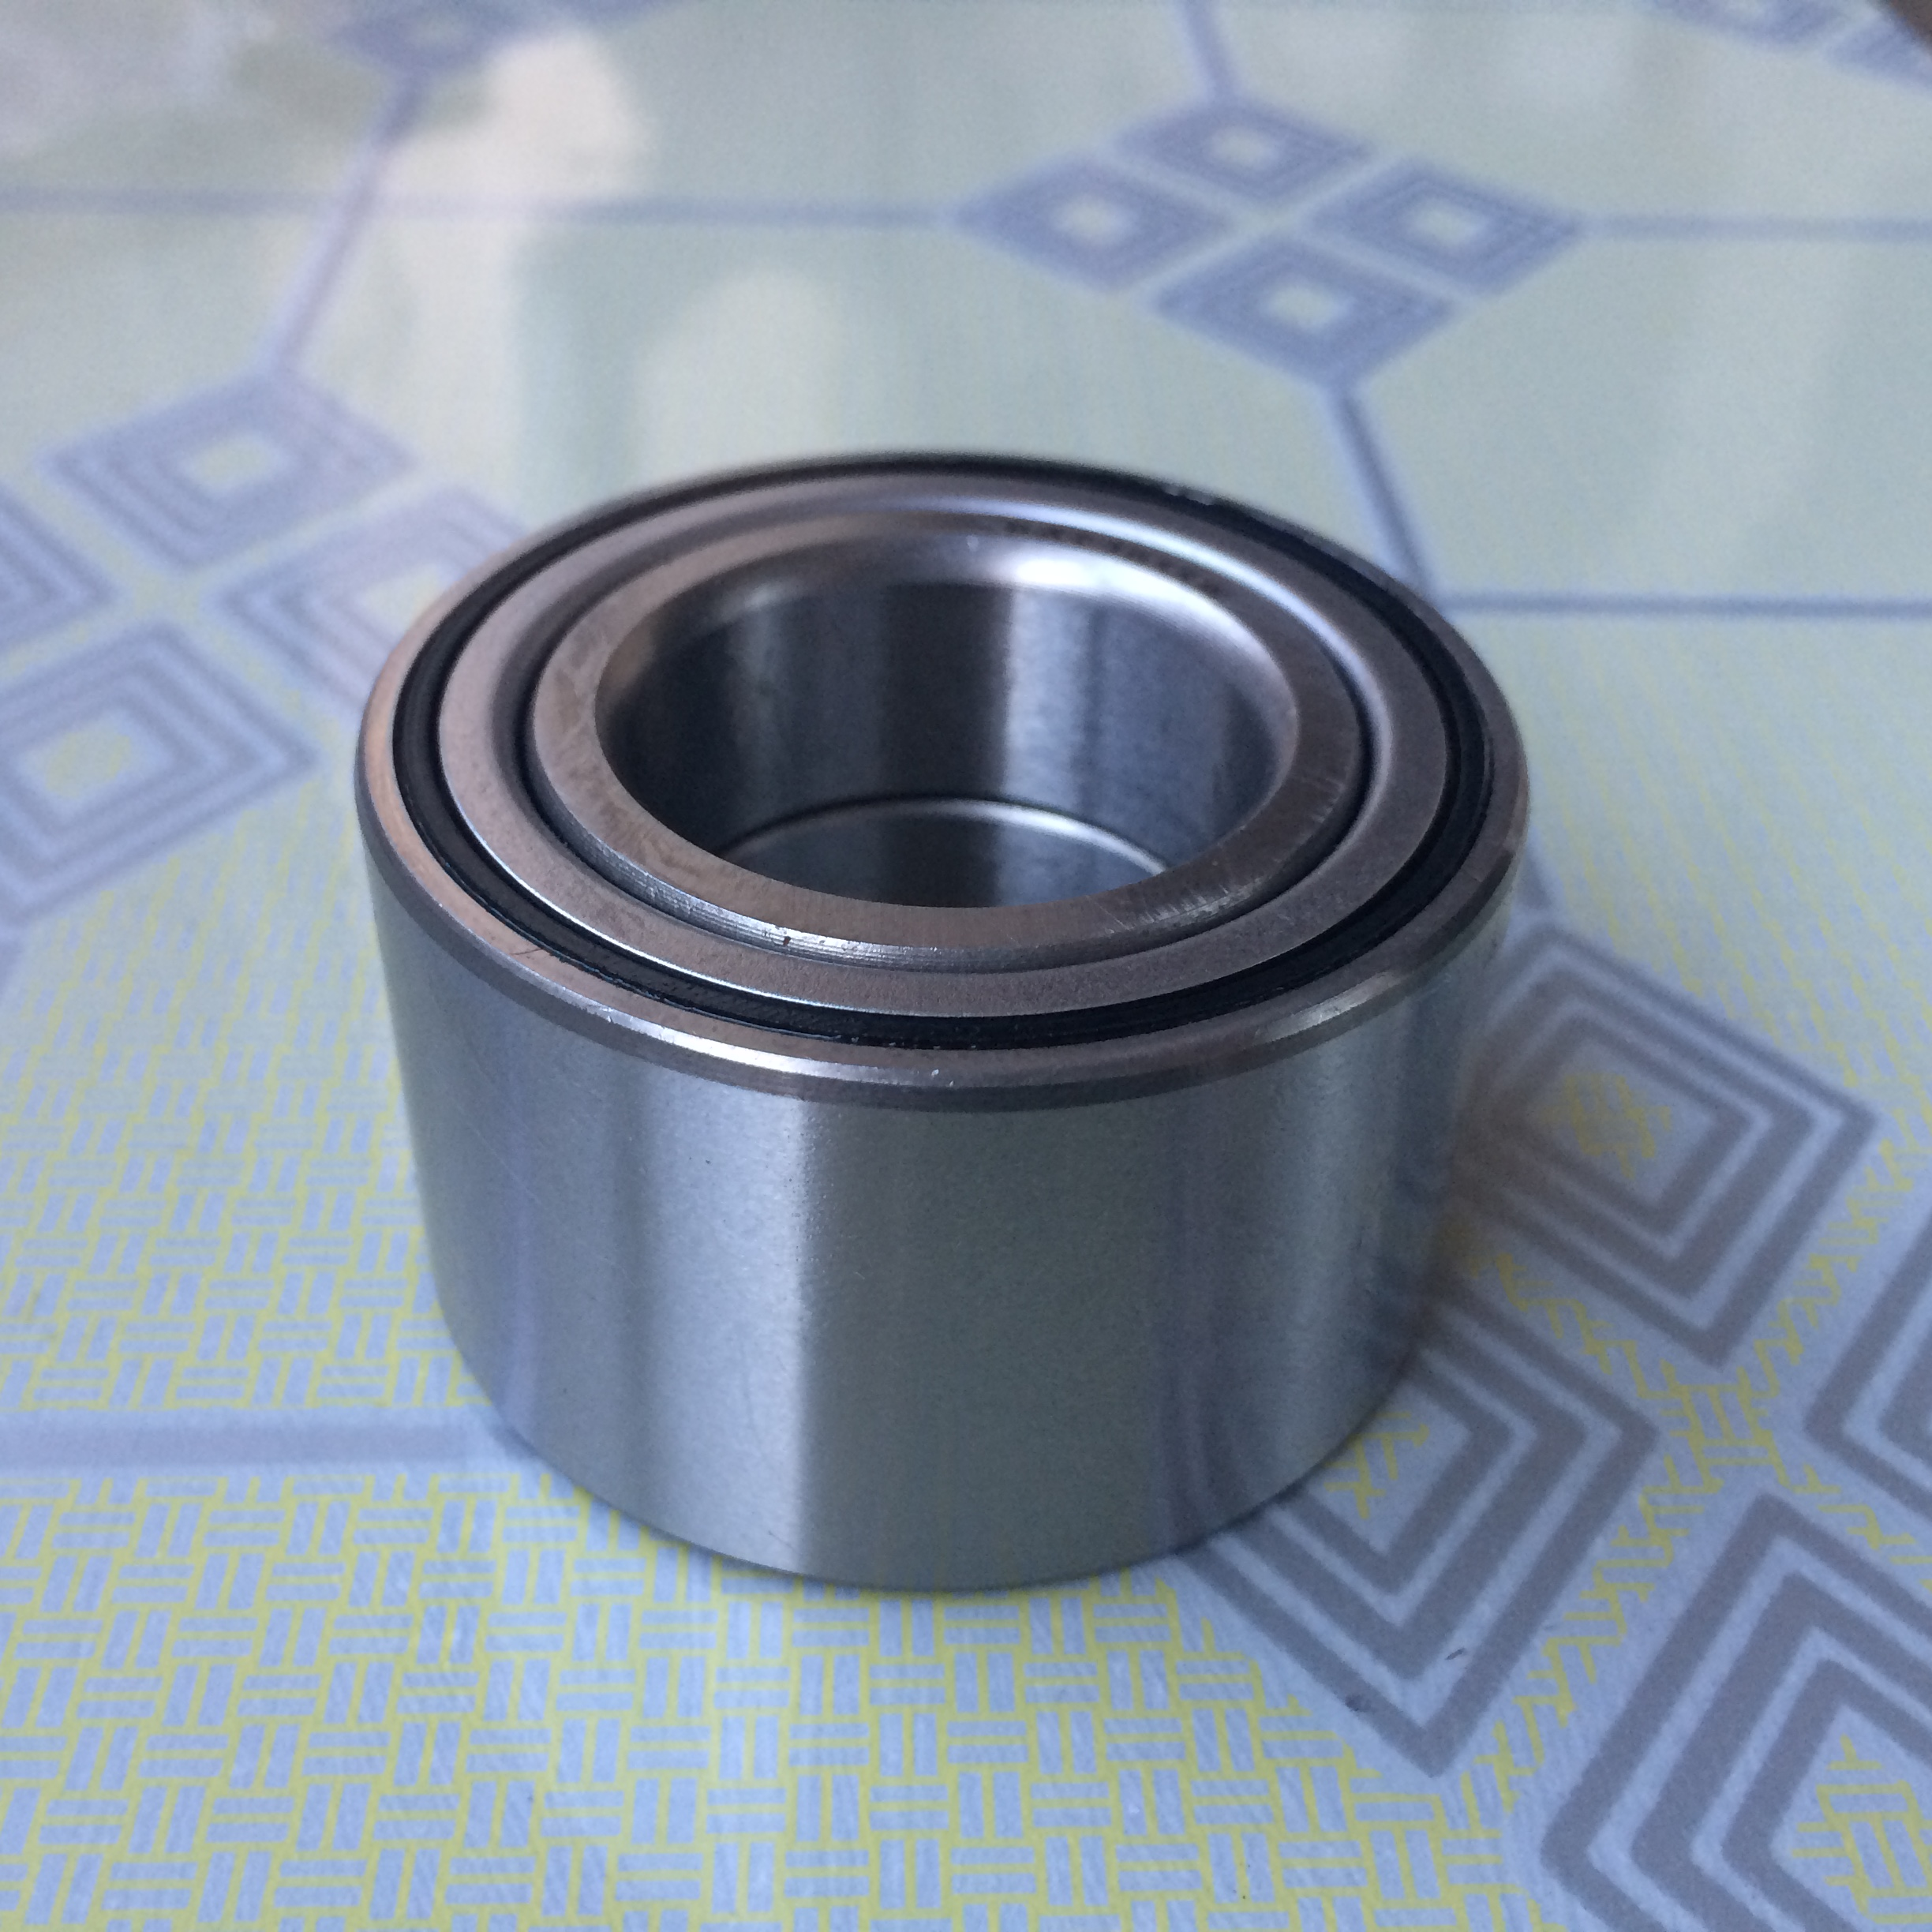 DAC35720434 auto wheel hub bearing size 35x72.04x34mm iron shield dac43760043 dac437643 dav4376 43bwd12 510060 auto wheel hub bearing size 43 76 43mm 43x76x43mm iron shield